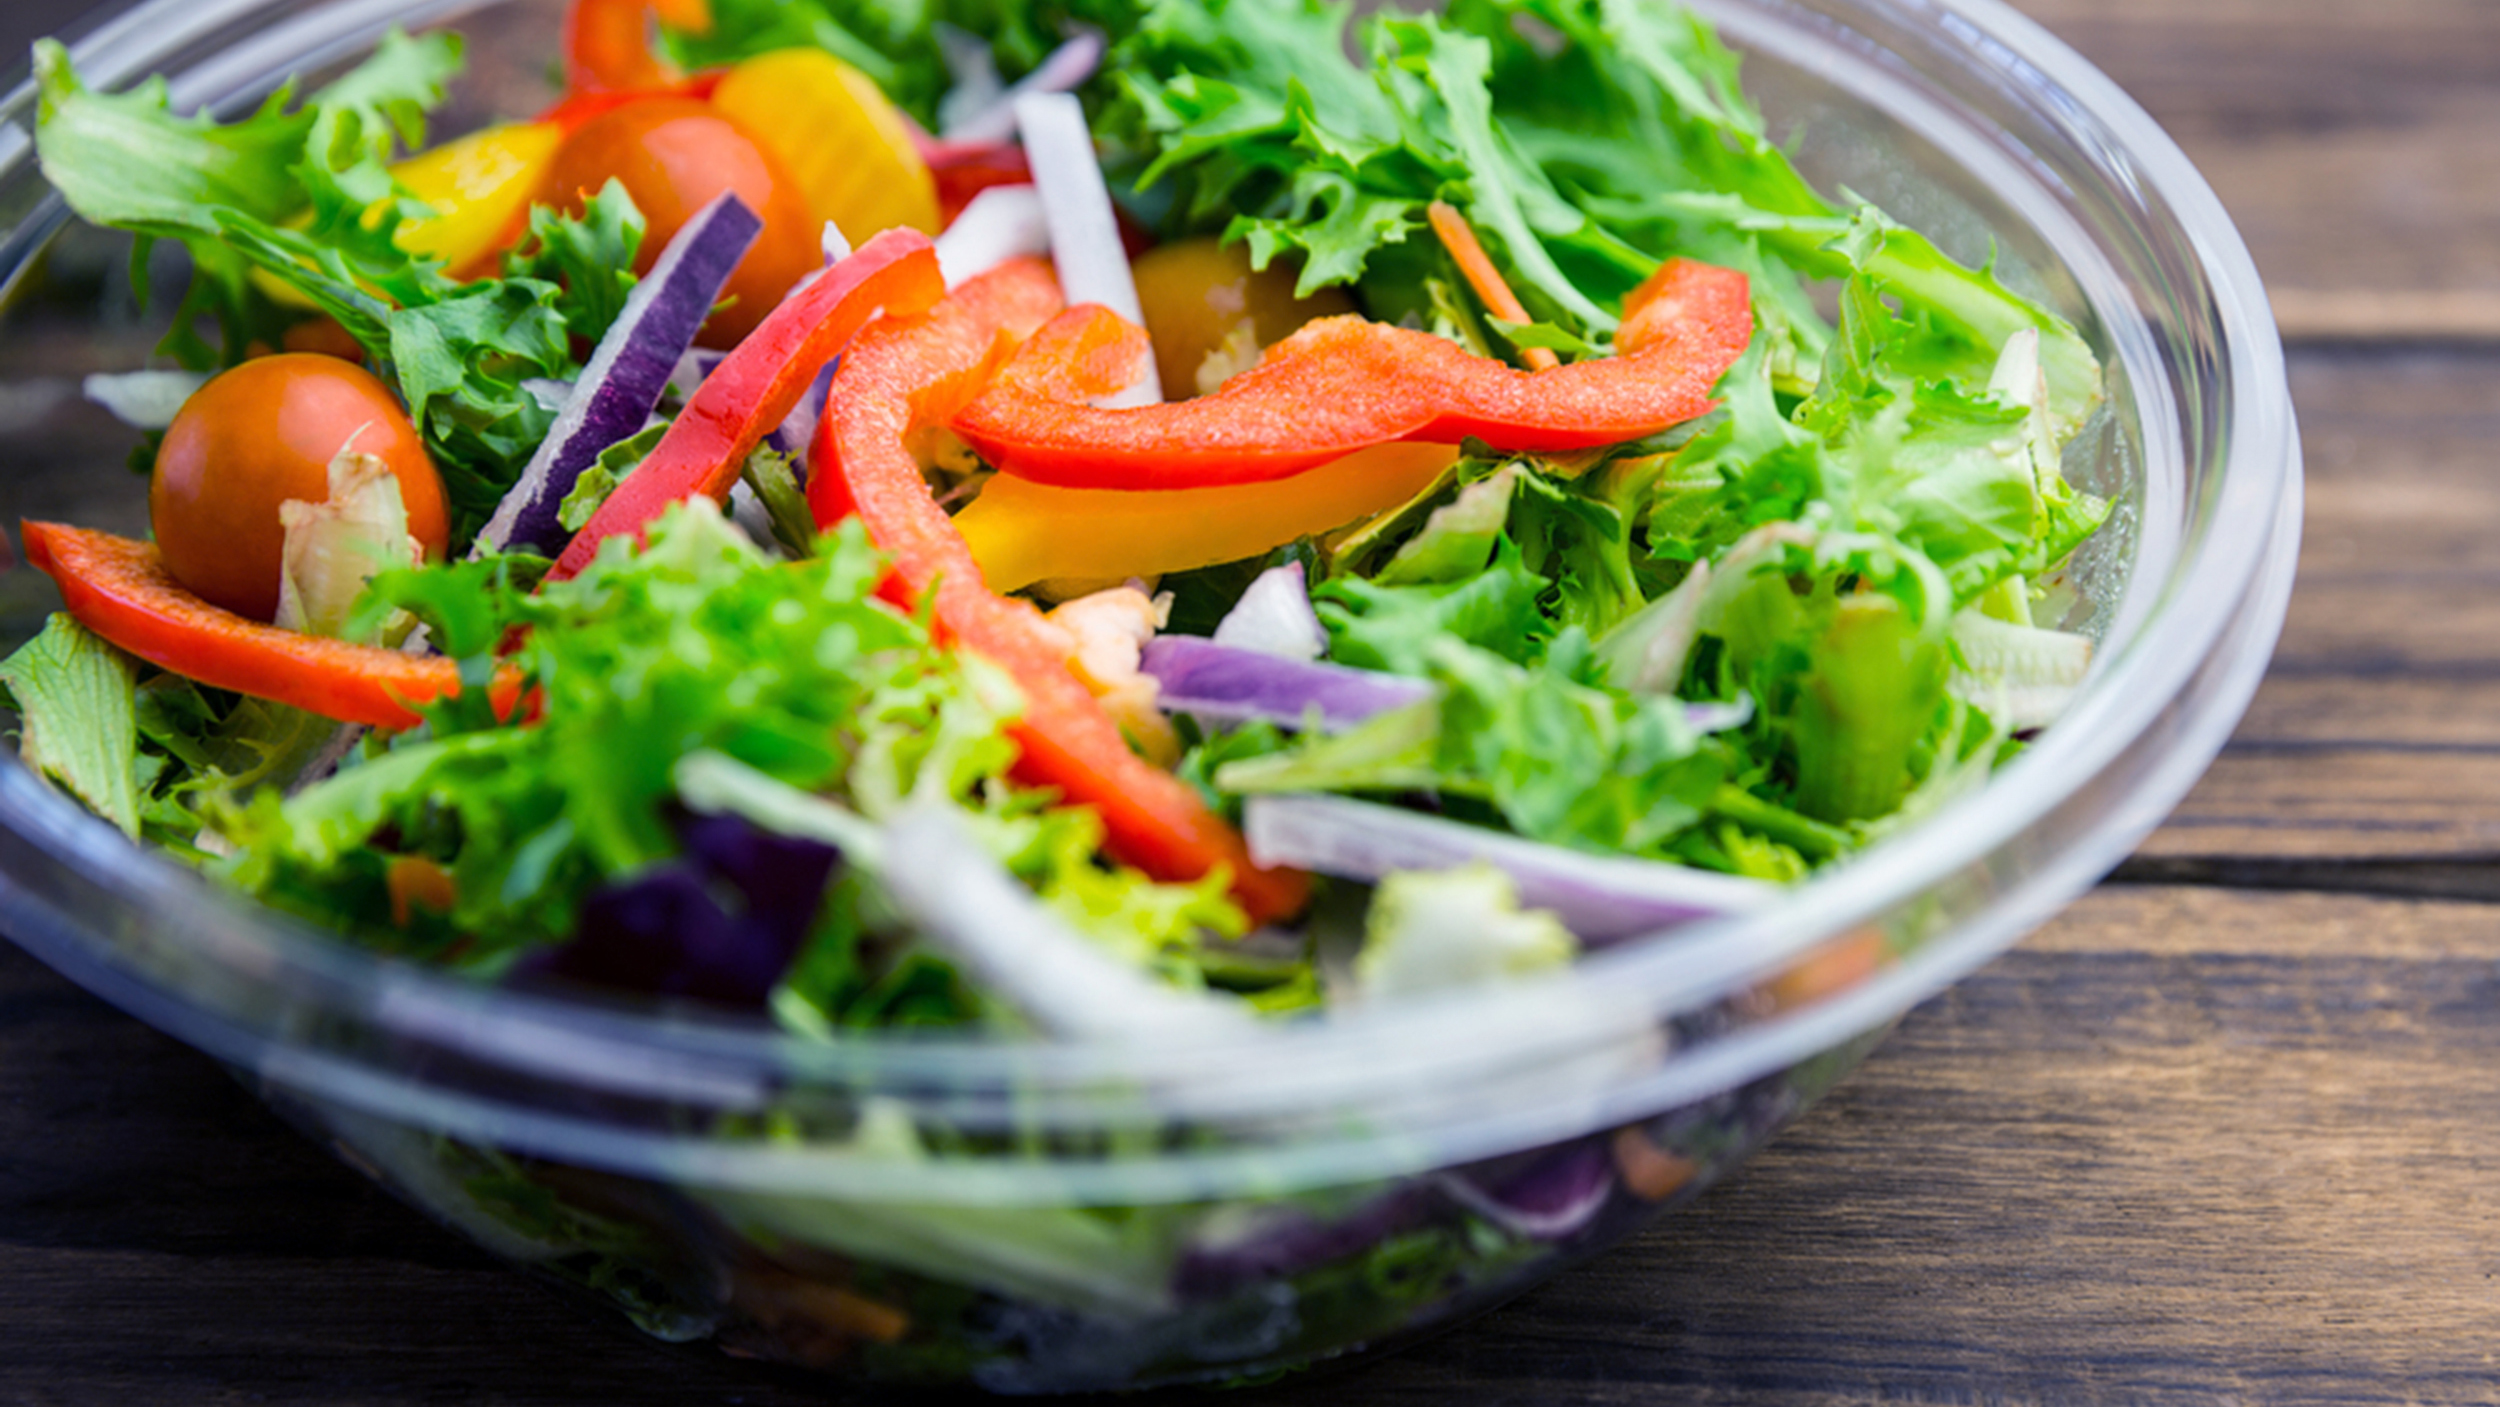 How To Order A Healthy Salad 8 Smart Tips For What To Eat